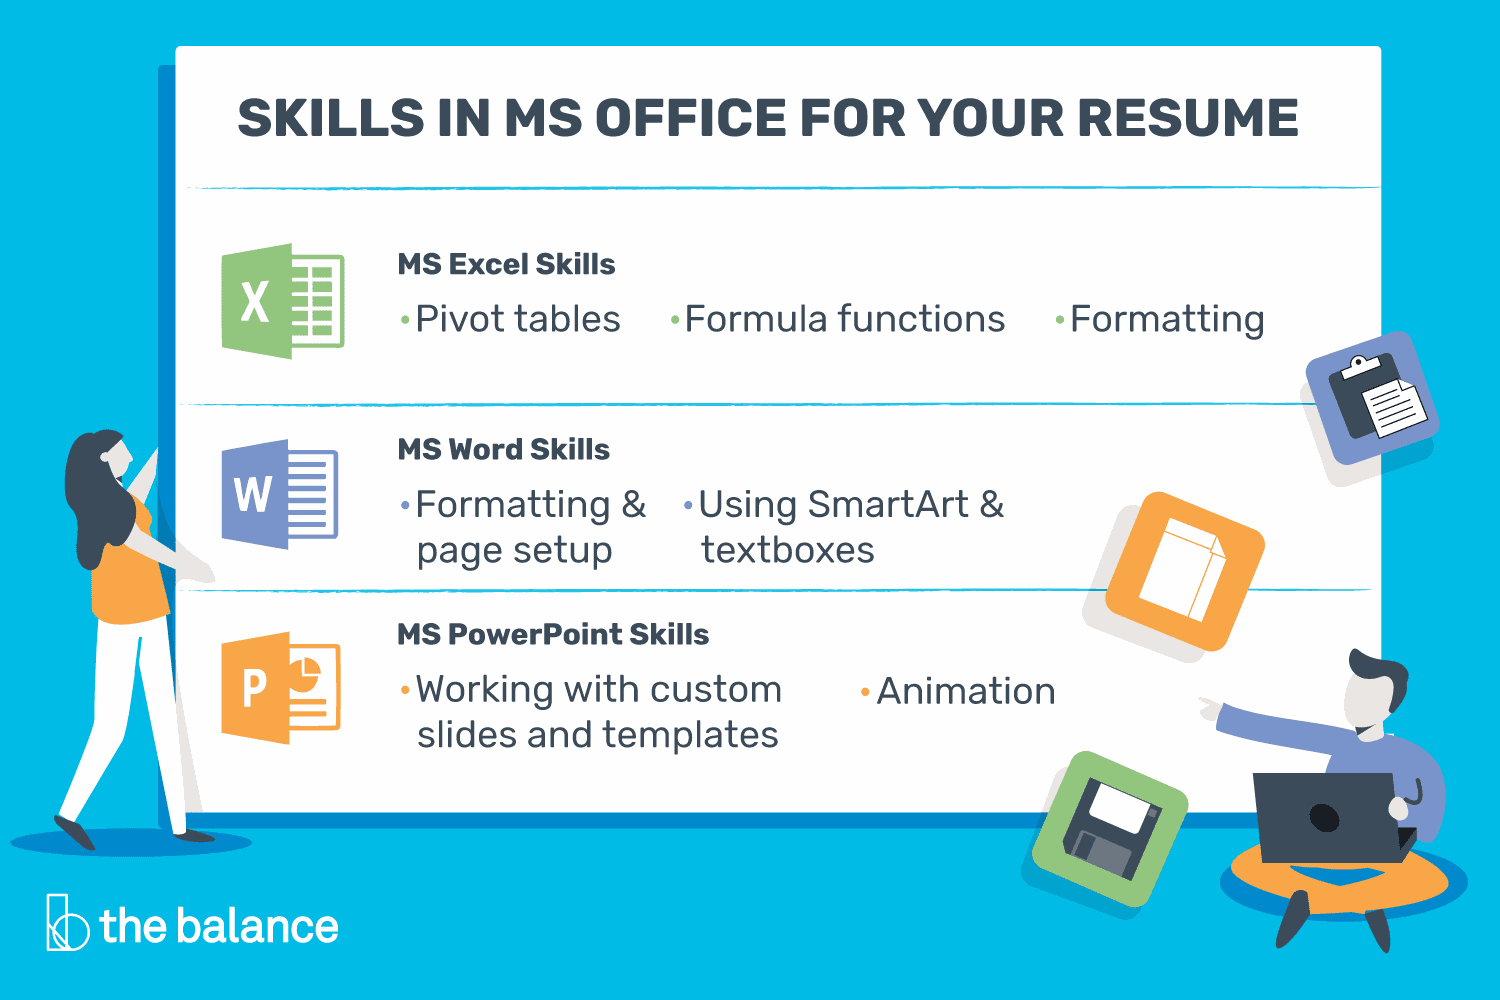 Microsoft Office Resume - Microsoft Fice Skills for Resumes